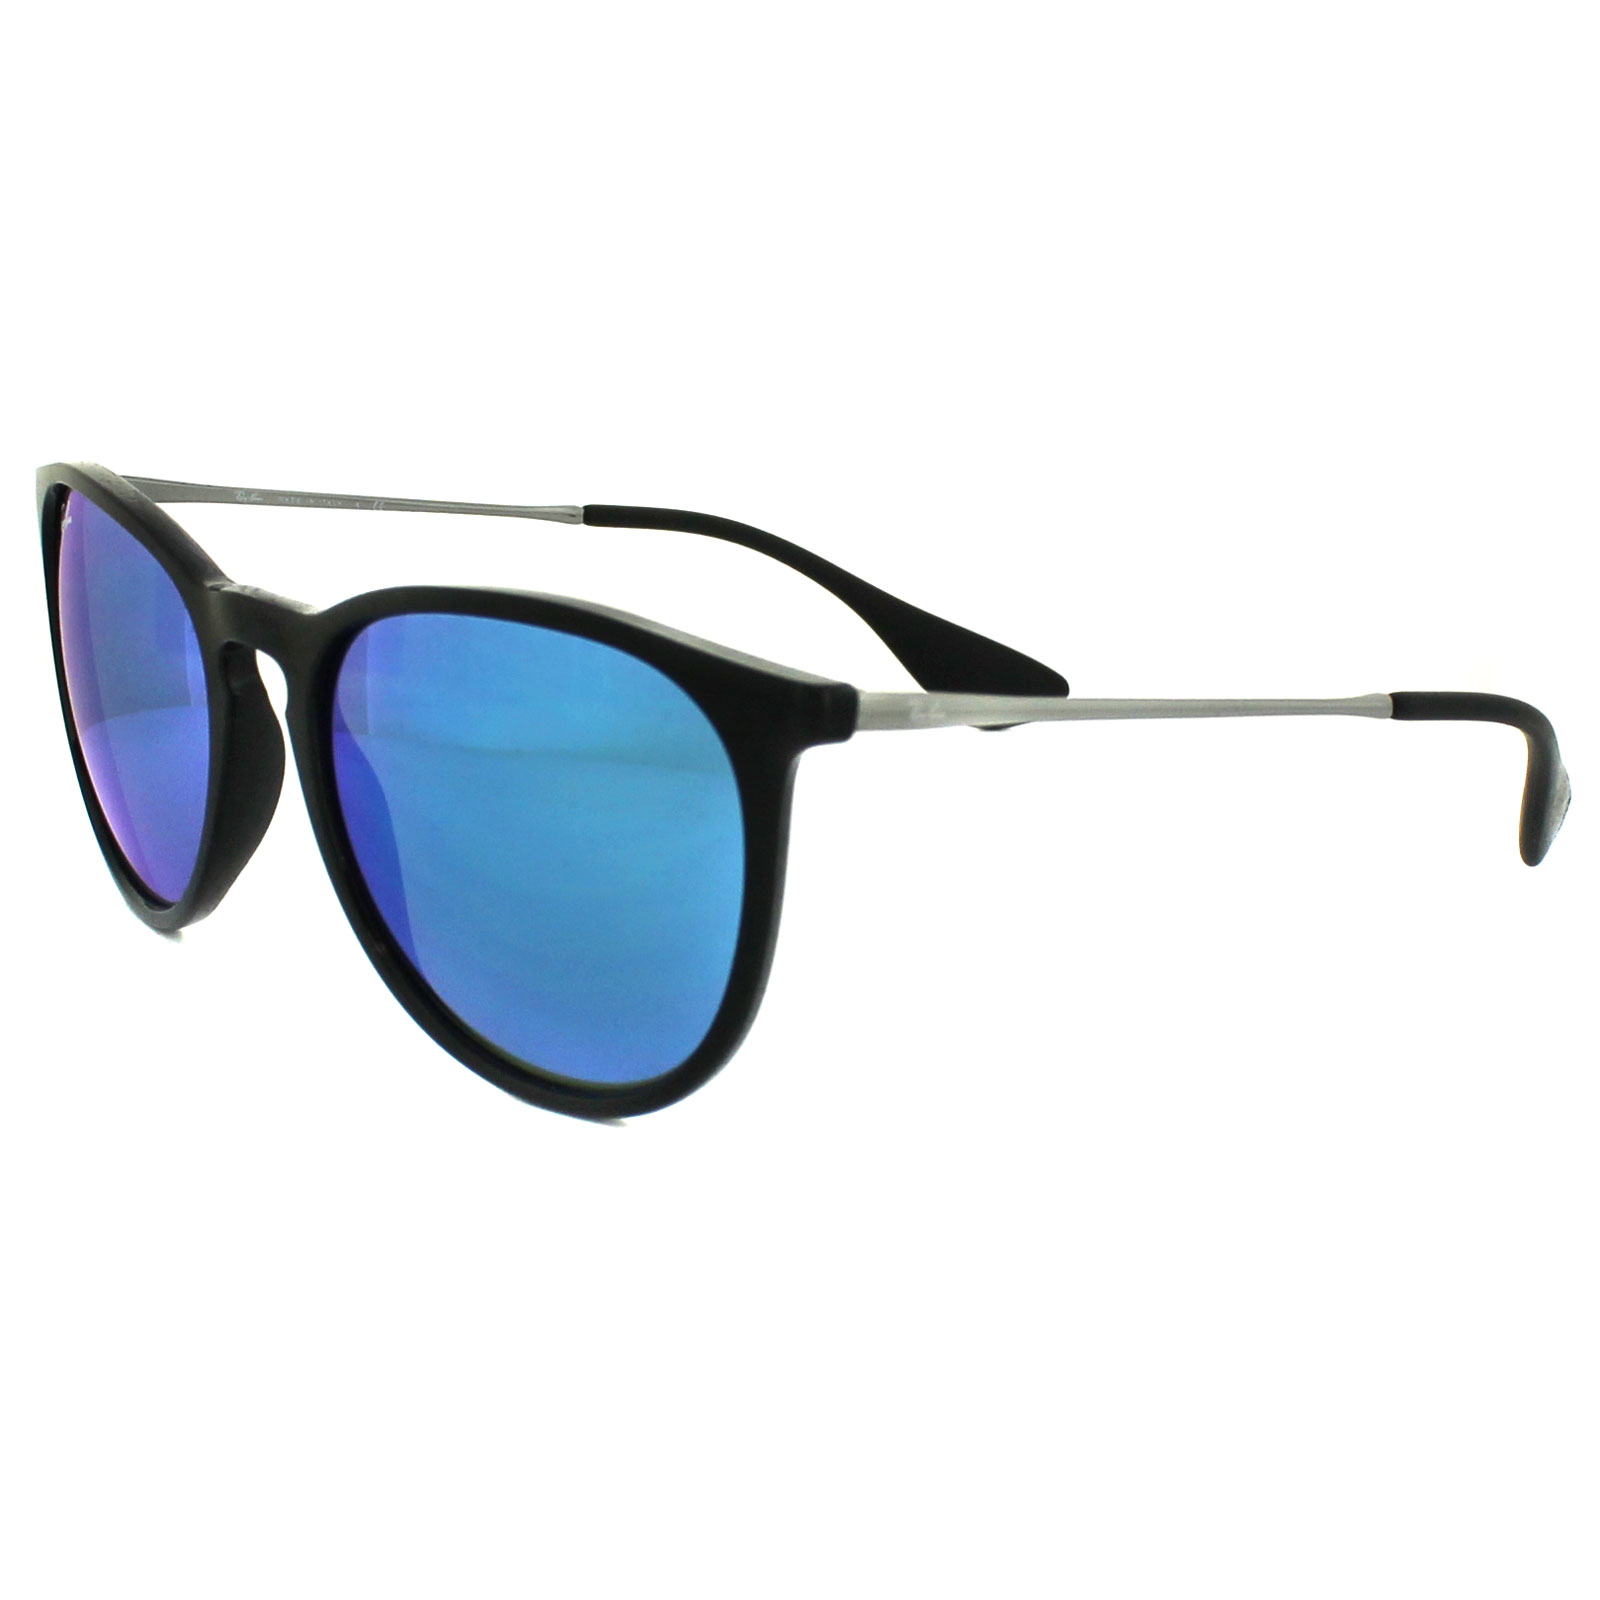 replica ray ban sunglasses australia  ray ban sunglasses erika 4171 601/55 black & gunmetal blue mirror